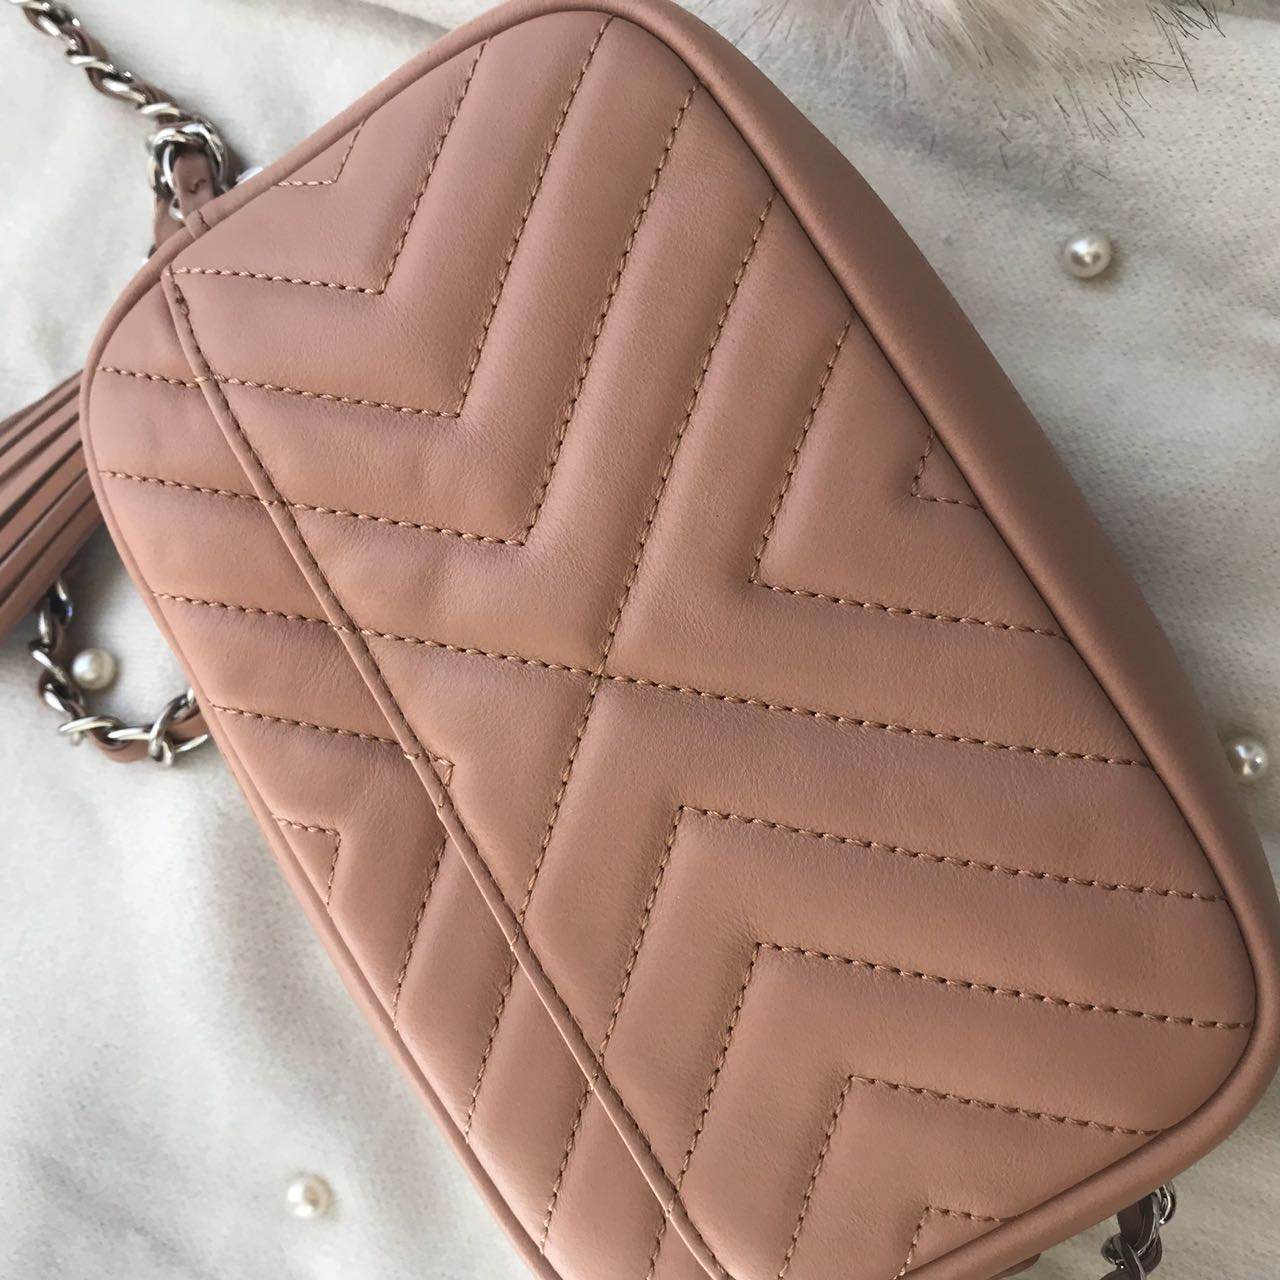 Bolsa new Crossbody Chanel